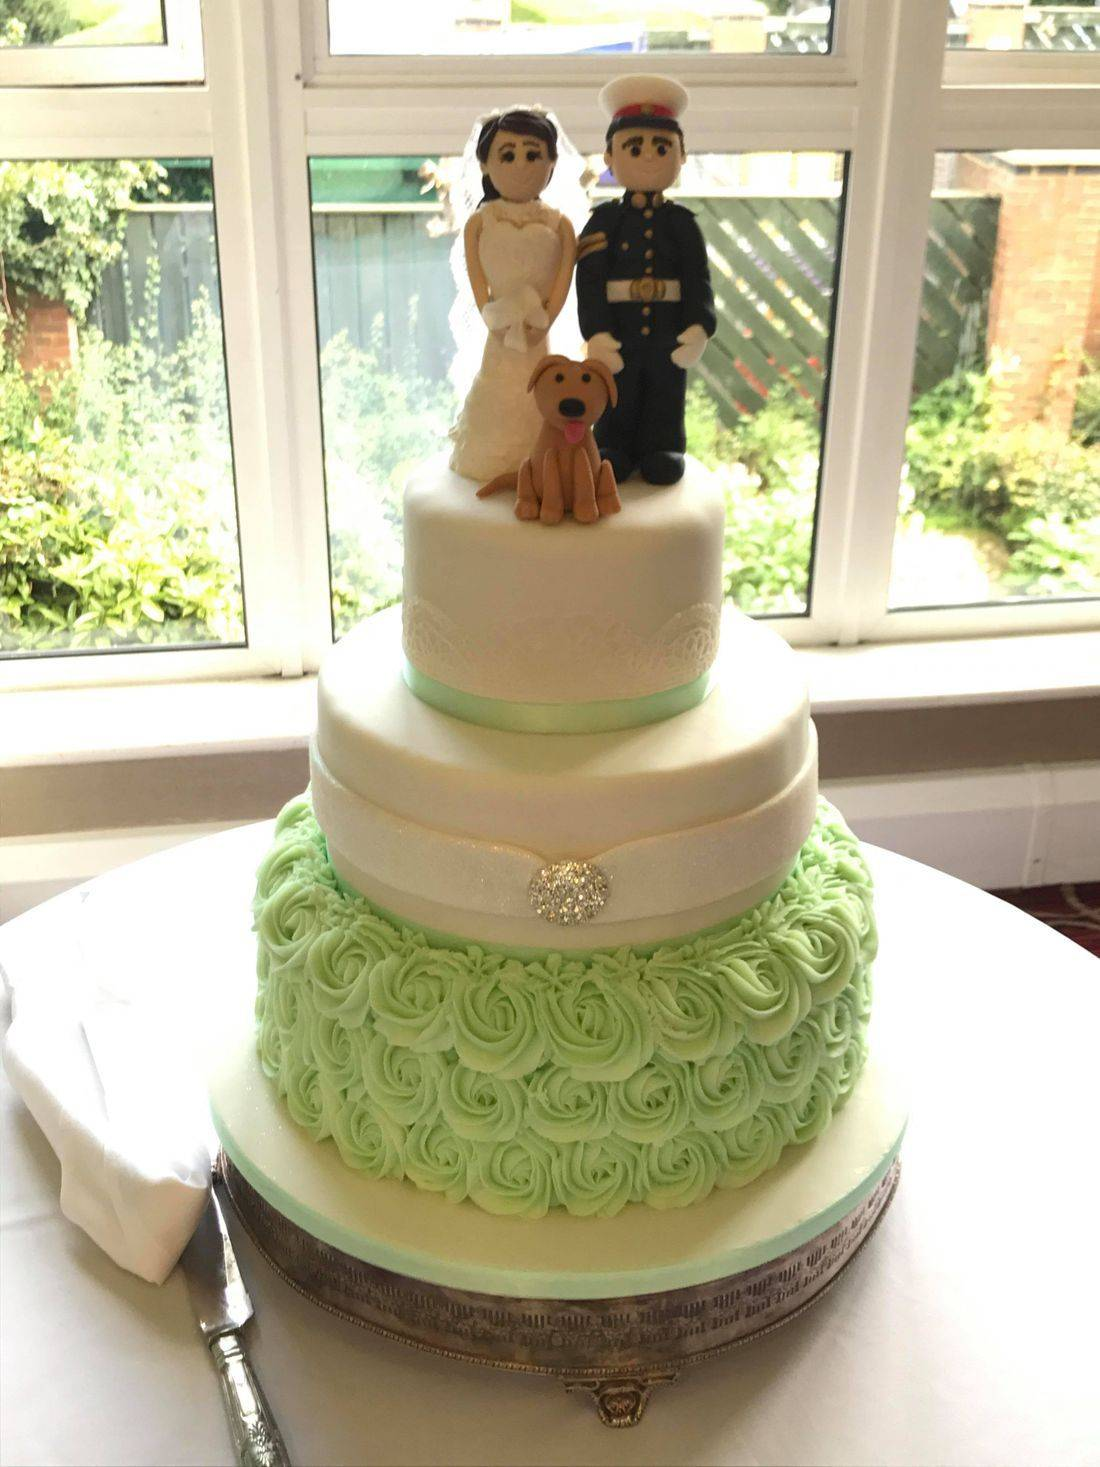 weddings, engagement, 1st, 2nd, 3rd, 4th, 5th, 6th, 7th, 8th, 9th, 10th, 18th, 21st, 30th, 40th, 50th, 60th, 70th, 80th, baby shower, baby, shower, christmas parties, dj, quiz night, host, snow cones, snow machine, princess, appearances, mascot, bouncy, castle, bouncy castle, softplay, soft play, mobile cocktail masterclass, mobile bar, cakes, face, painting, face painting, pamper, pamper parties, nails, sweet cones, sweet, sweets, cart, chocolate fountain, chocolate, buble machine, bubbles, magician, magic, close up magic, miss europe, charity events in dunstable, online shop, online store, popcorn, candy floss, bedfordshire, candyfloss, beds, dunstable, luton, leighton buzzard, hemel hempstead, bedford, milton keynes, harpenden, hertfordshire, buckinghamshire, parties, party, packages, corporate events, children, adult, kids, dj, party games, houghton regis, sundon park, caddington, kensworth, toddington, redbourn, edlesborough, totternhoe, eaton bray, ivinghoe, tring, hocklife, woburn, whipsnade, st albans, berkhamsted, flitwick, westoning, harlington, hitchin, great offley, weddings, wedding, venue, tea green, perfect, personalised, parties, uk